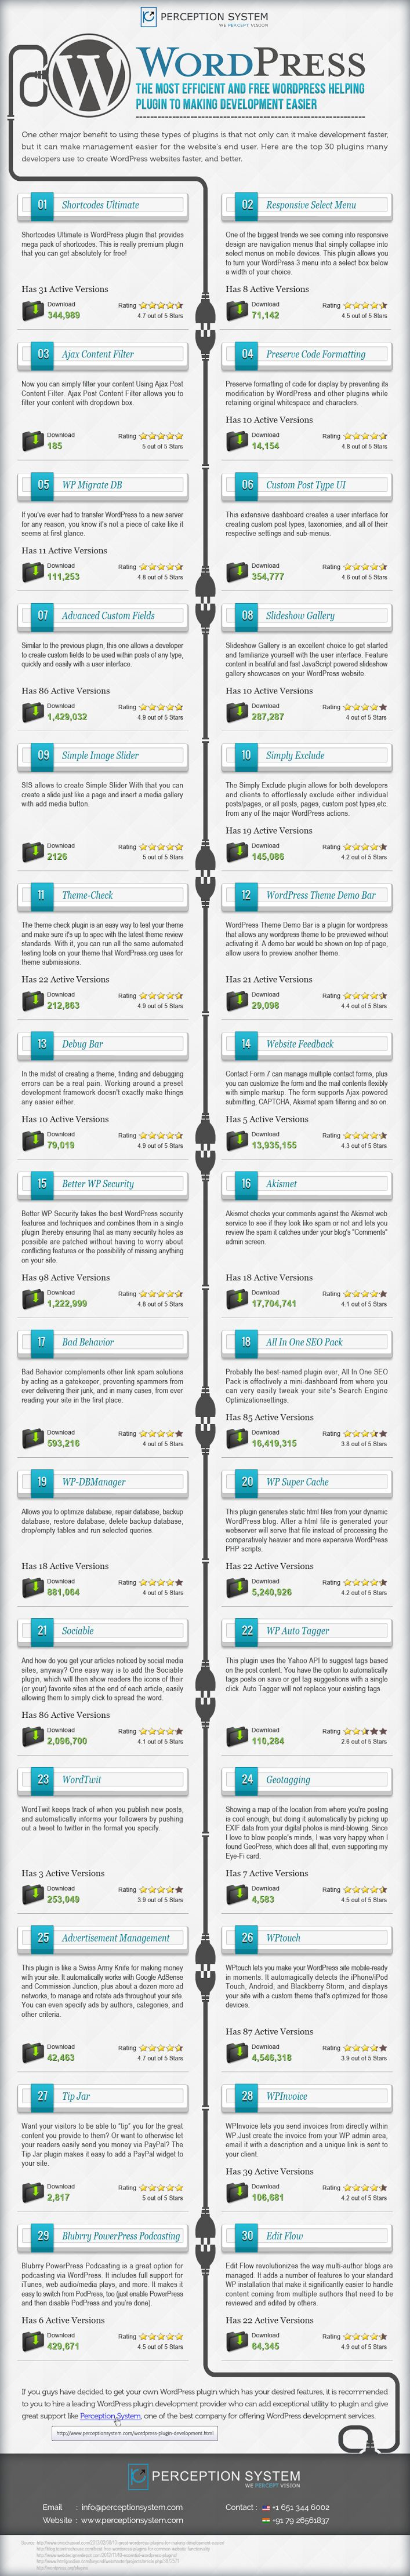 Top 30 Free WordPress Plug-ins To Make Development Tasks Easier #infographics